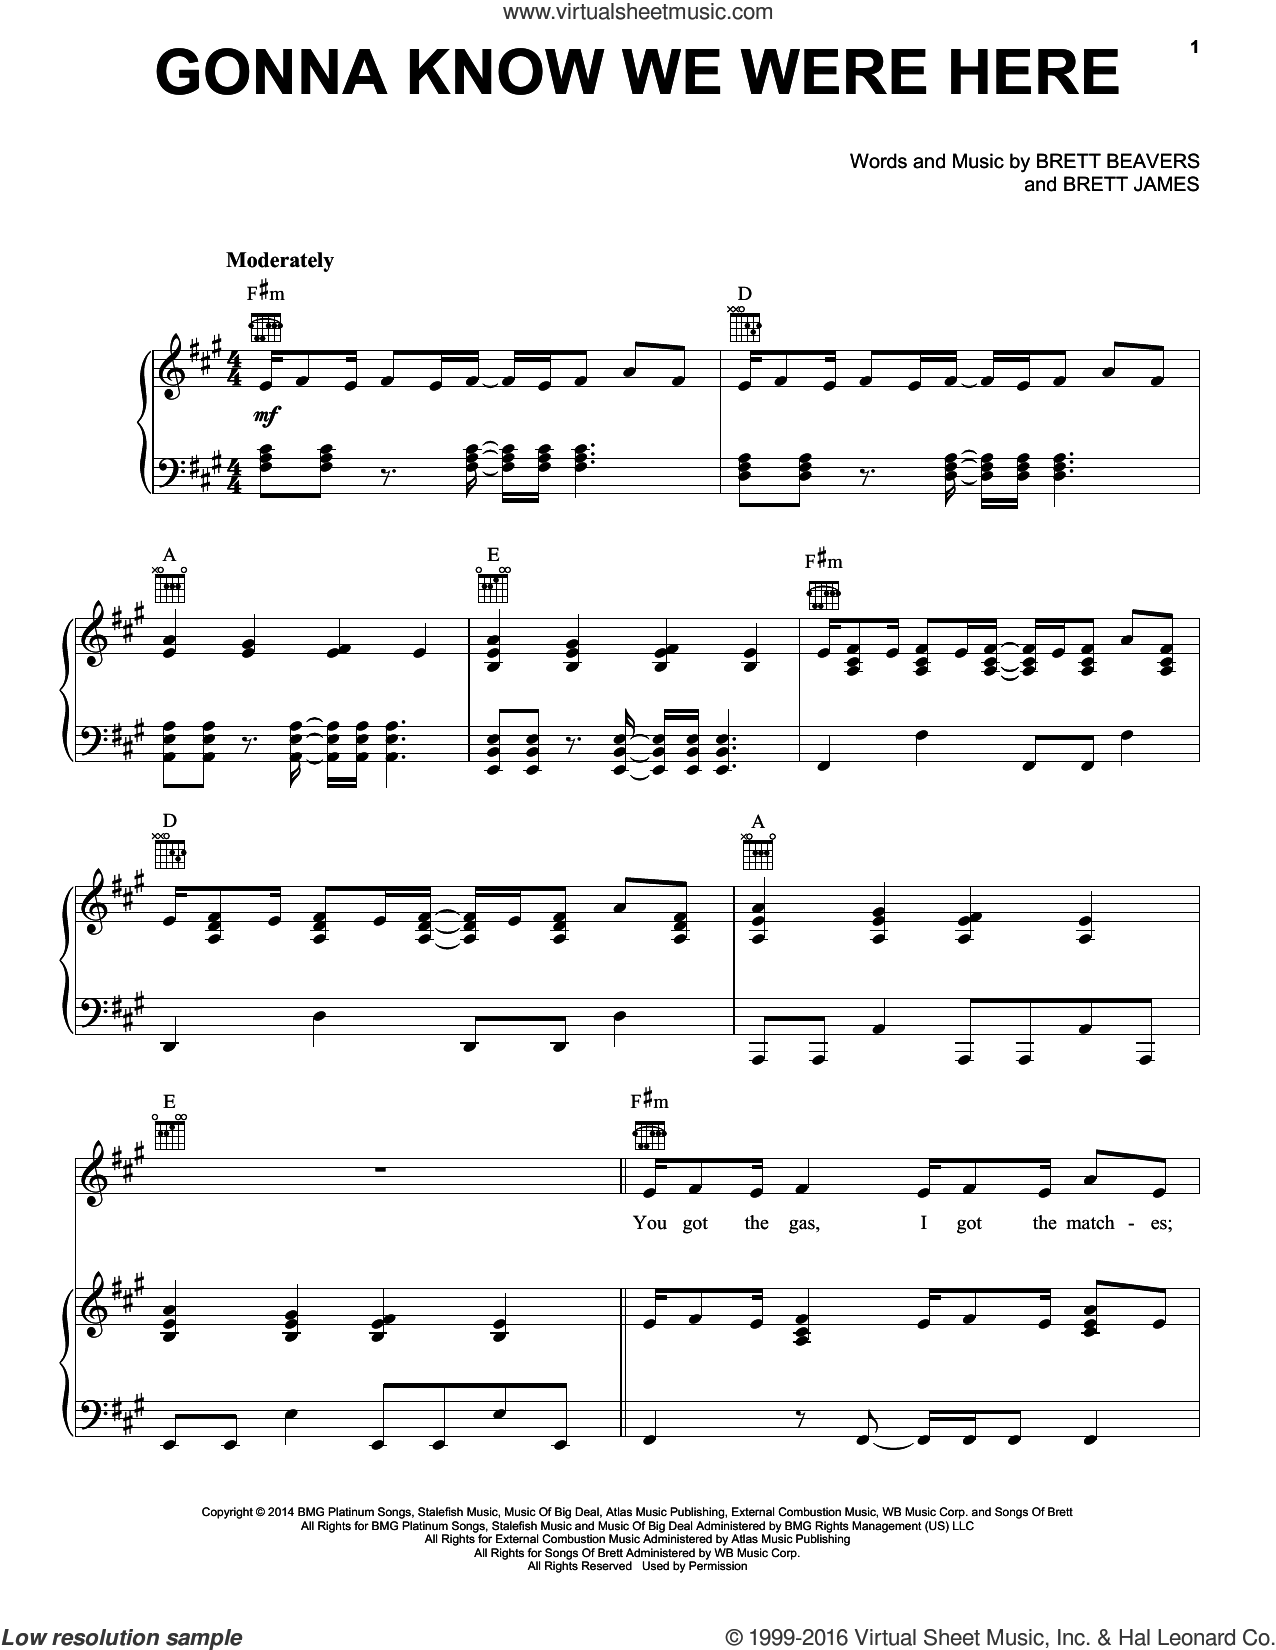 Gonna Know We Were Here sheet music for voice, piano or guitar by Jason Aldean, Brett Beavers and Brett James, intermediate skill level